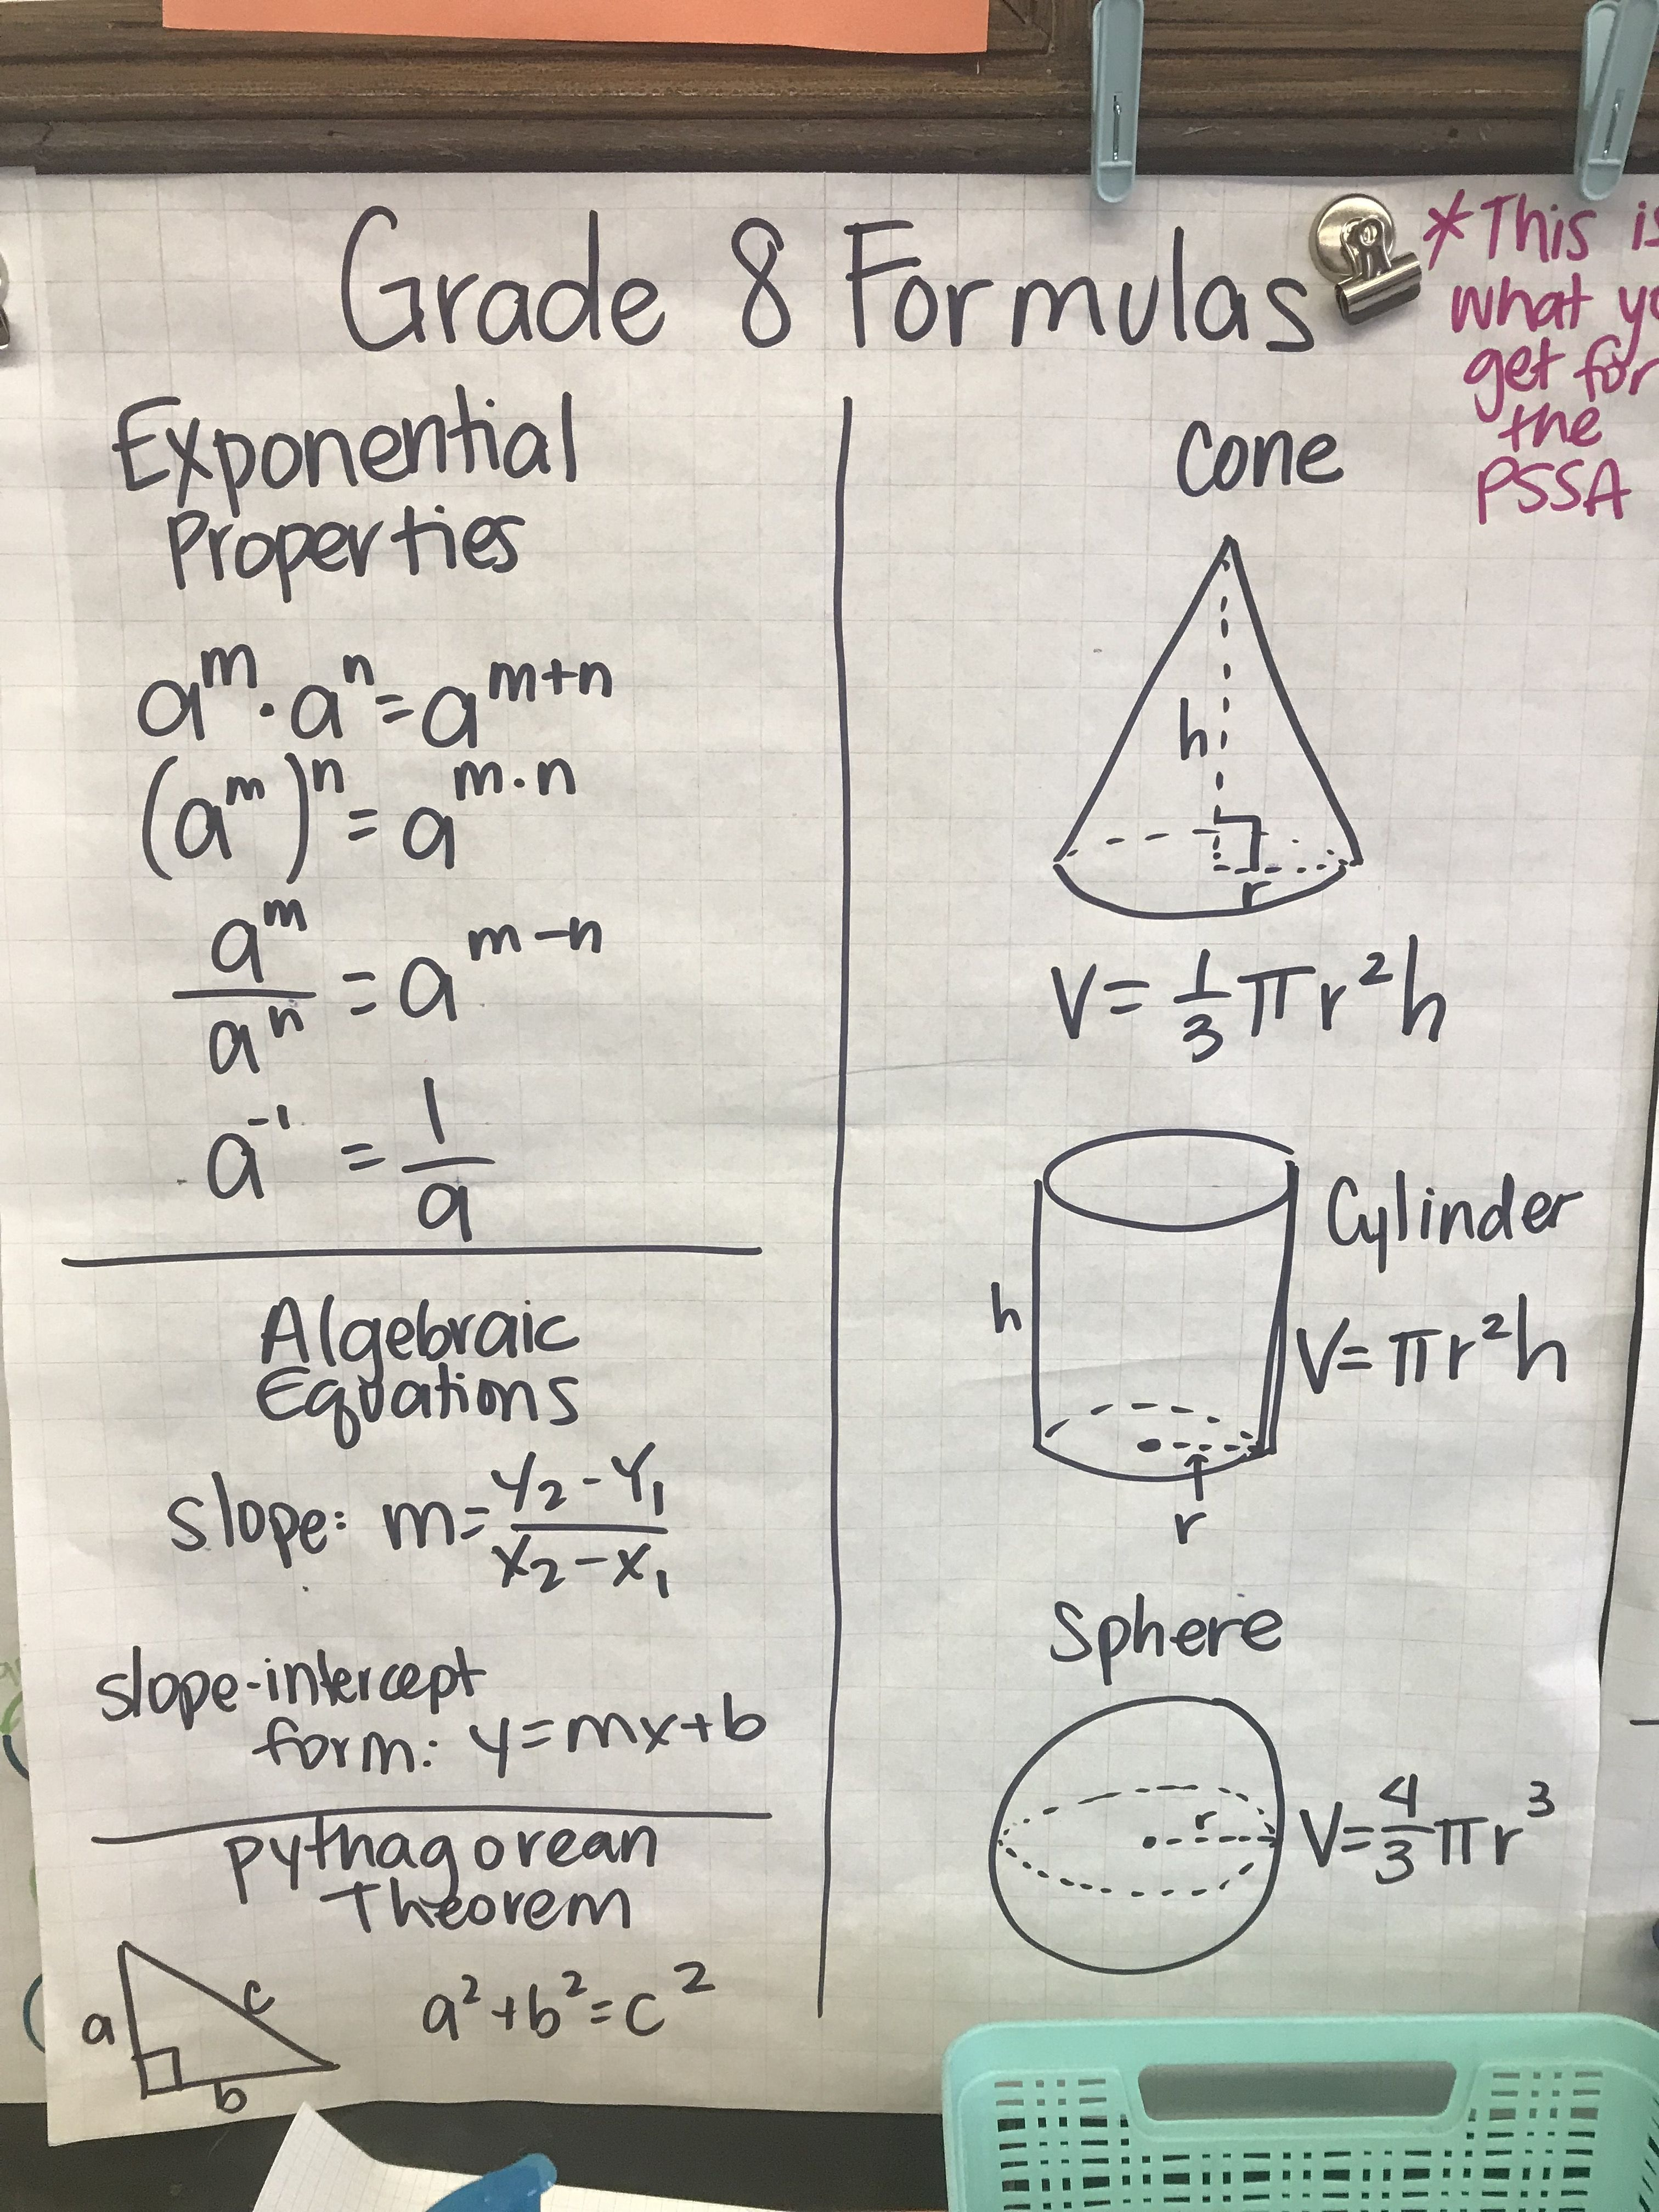 Pssa 8th Grade Formula Sheet Anchor Chart Photo Only